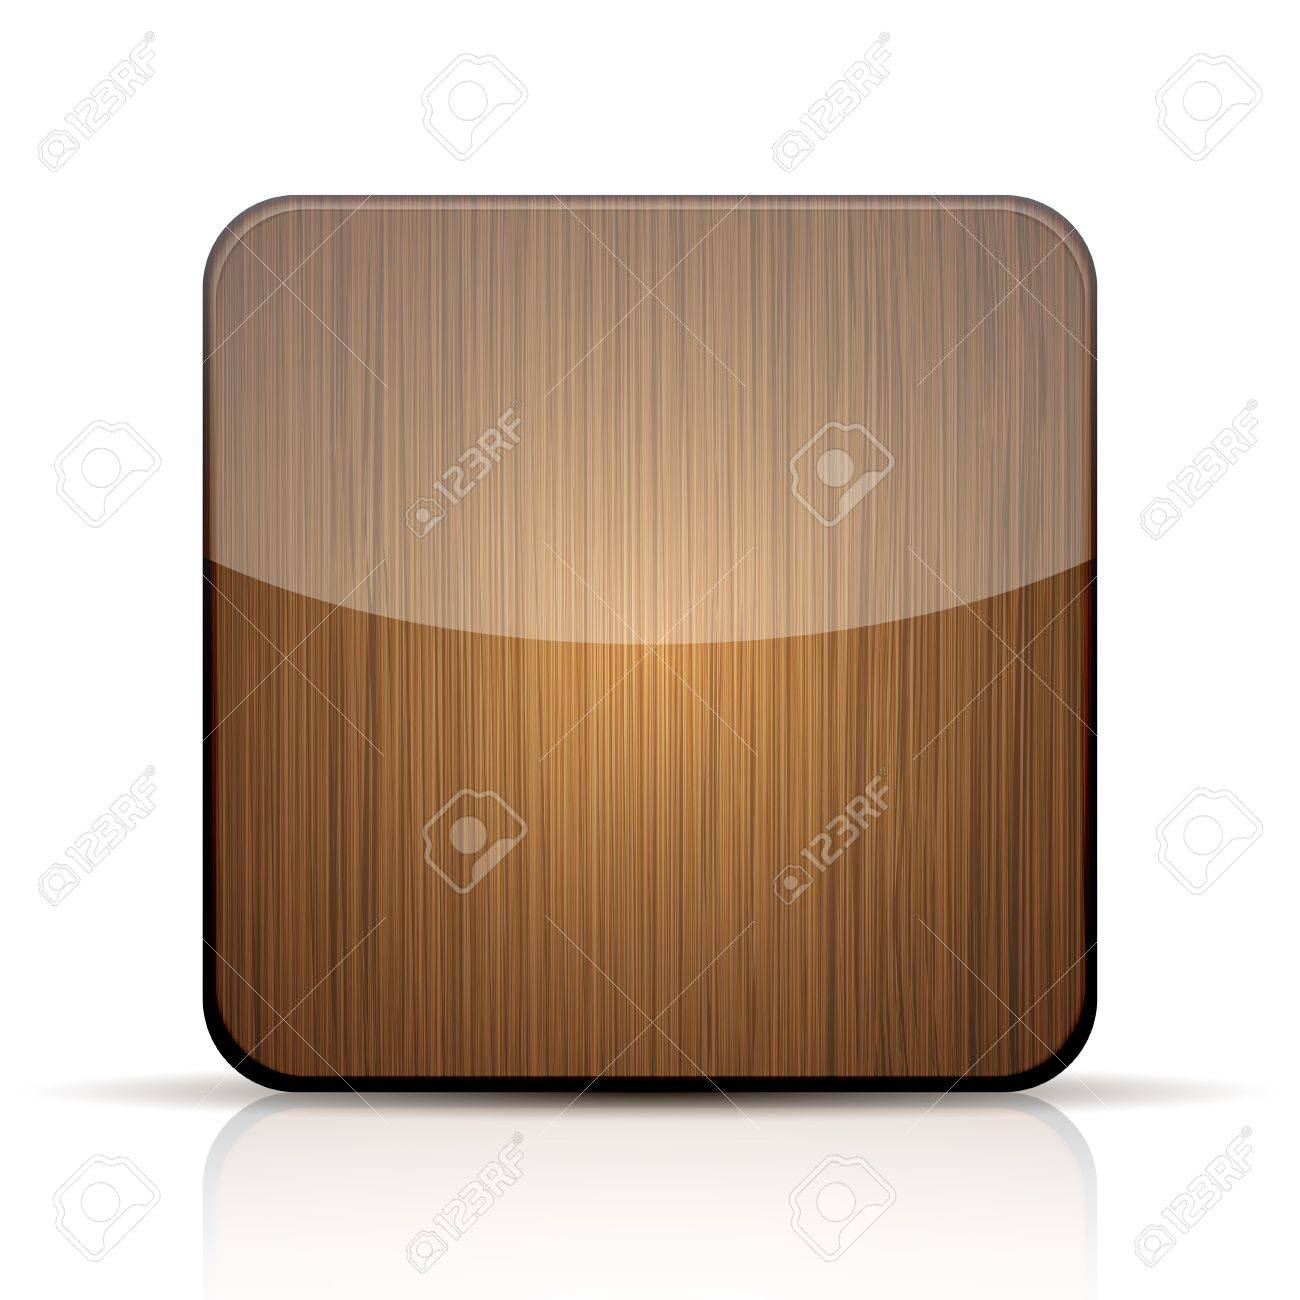 wooden app icon on white background. Stock Vector - 15146215